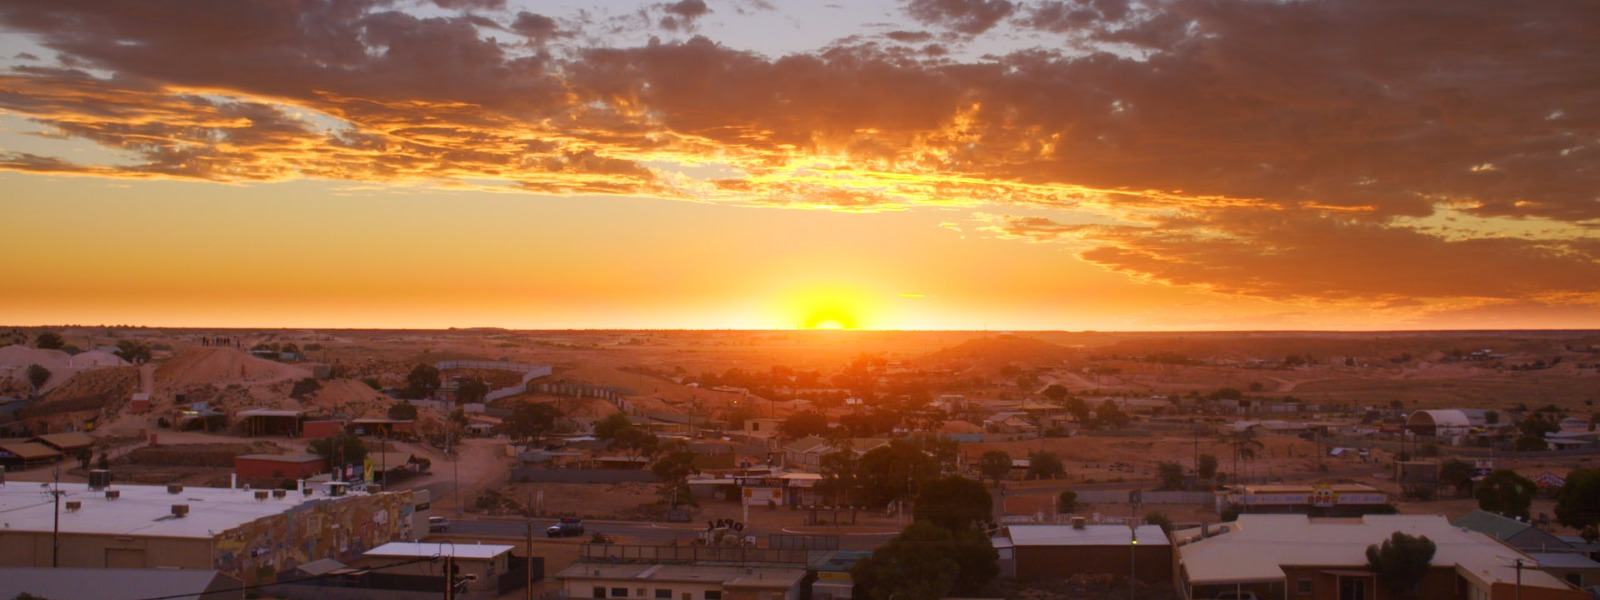 coober pedy at sunset